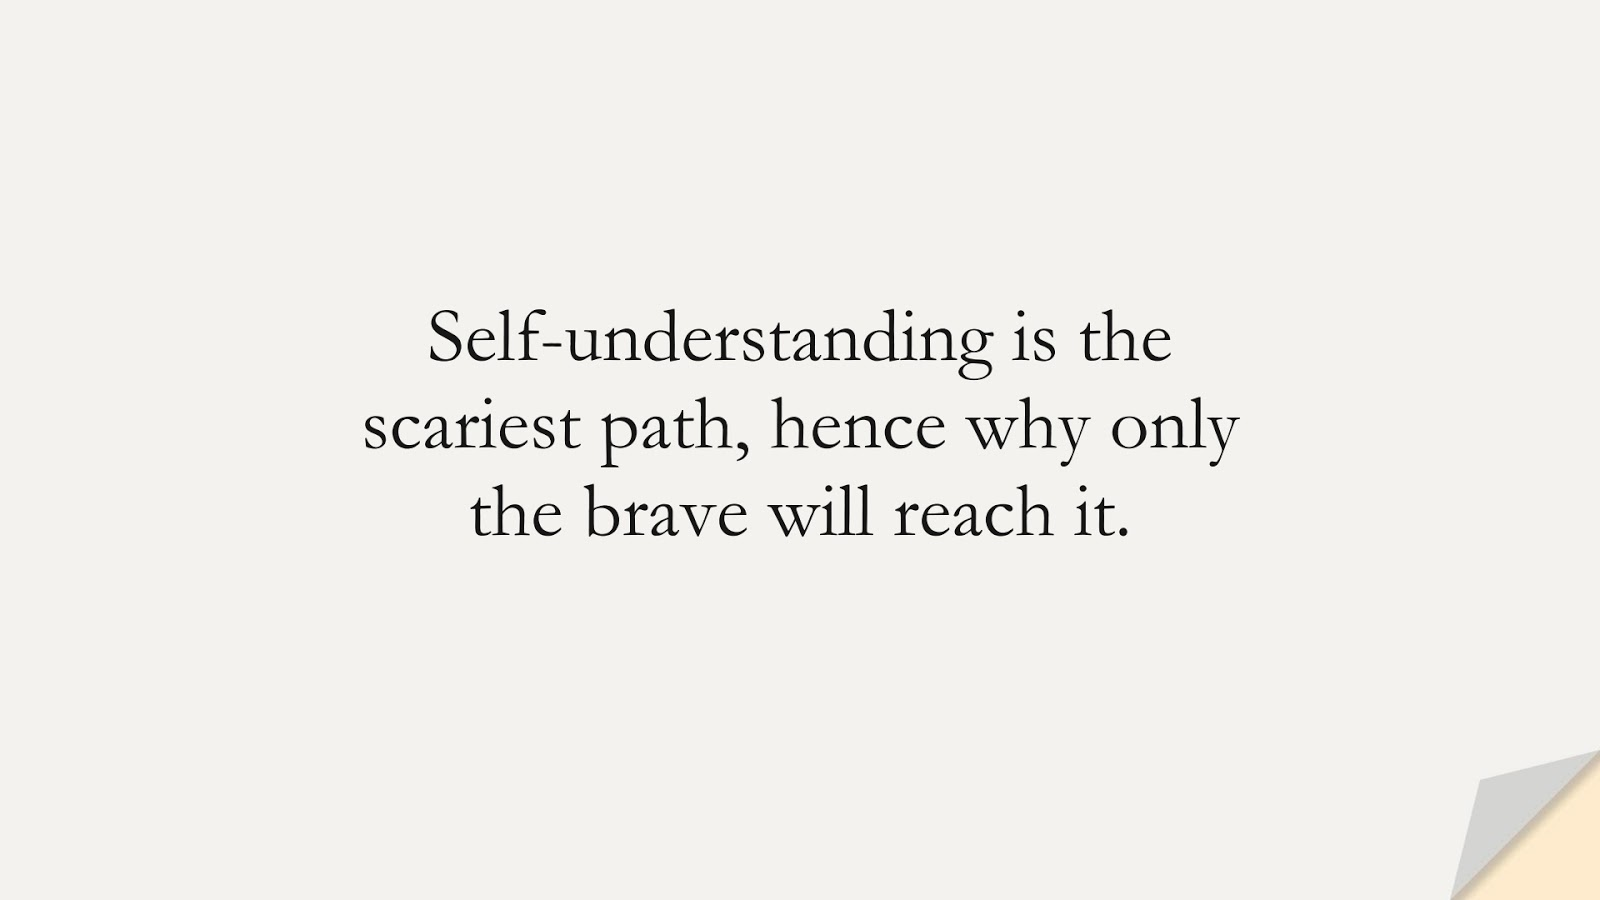 Self-understanding is the scariest path, hence why only the brave will reach it.FALSE